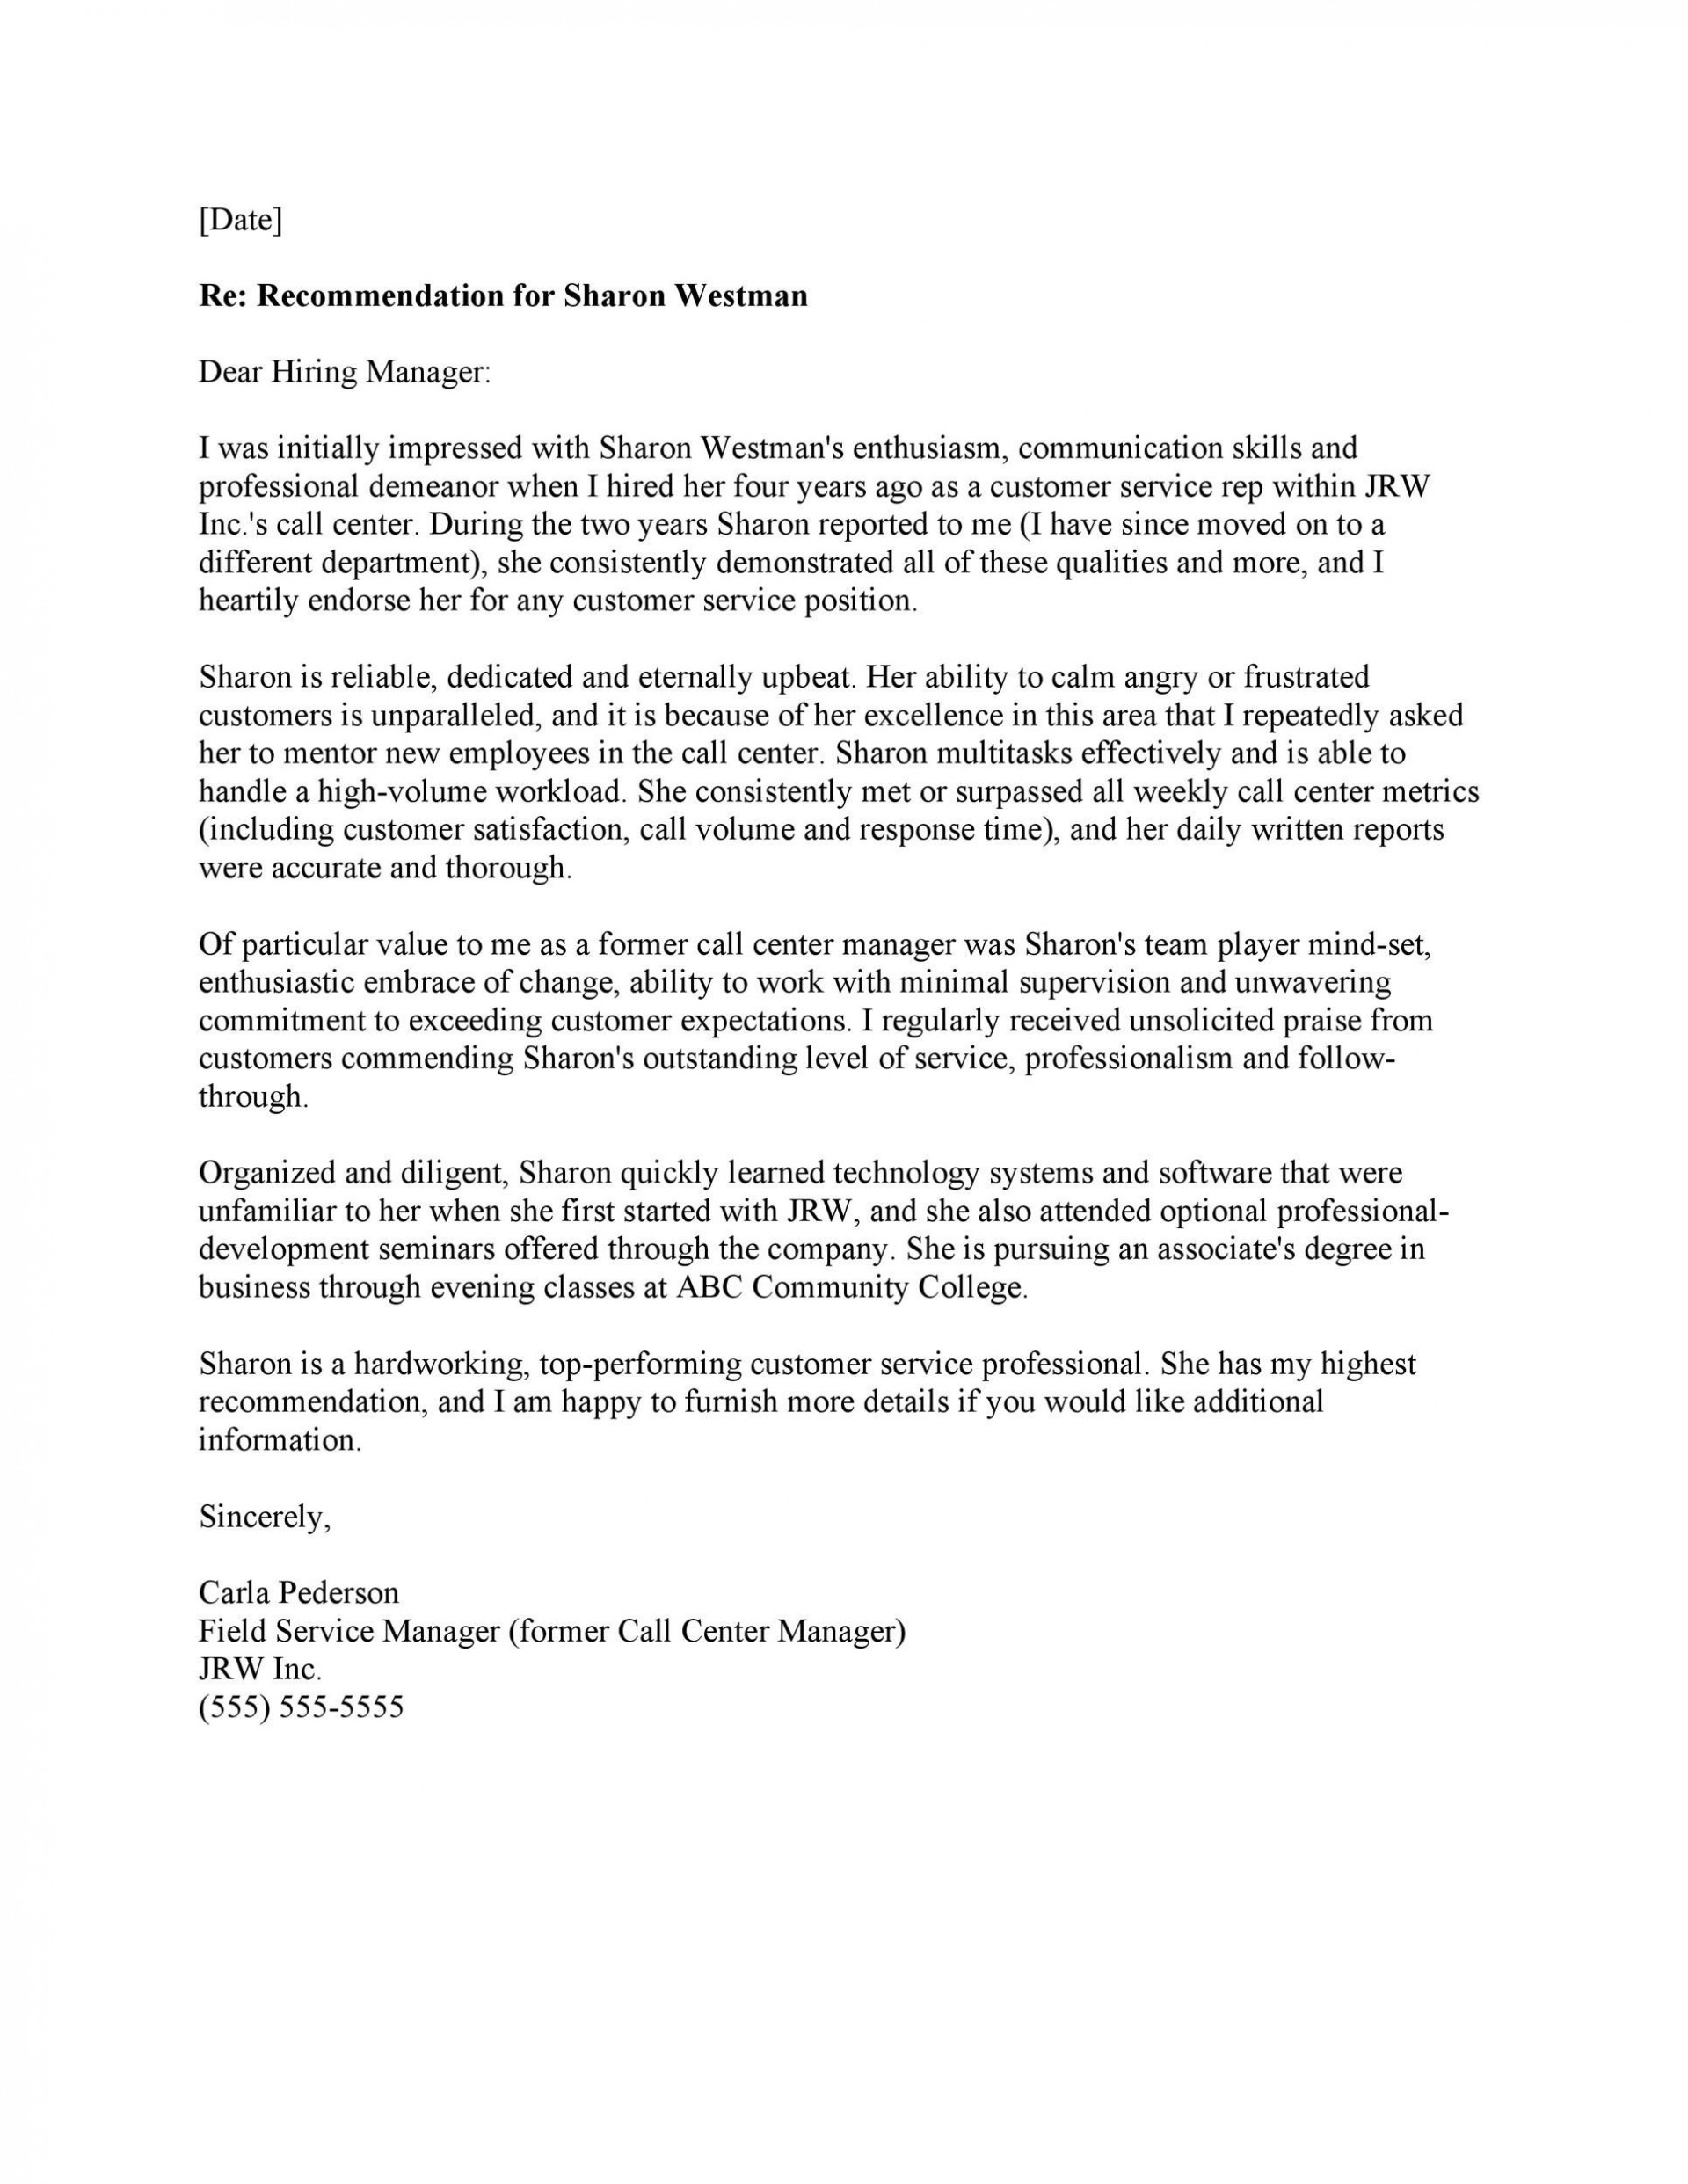 004 Amazing Letter Of Recommendation Template Highest Quality  For Teacher Student From Coach Word1920